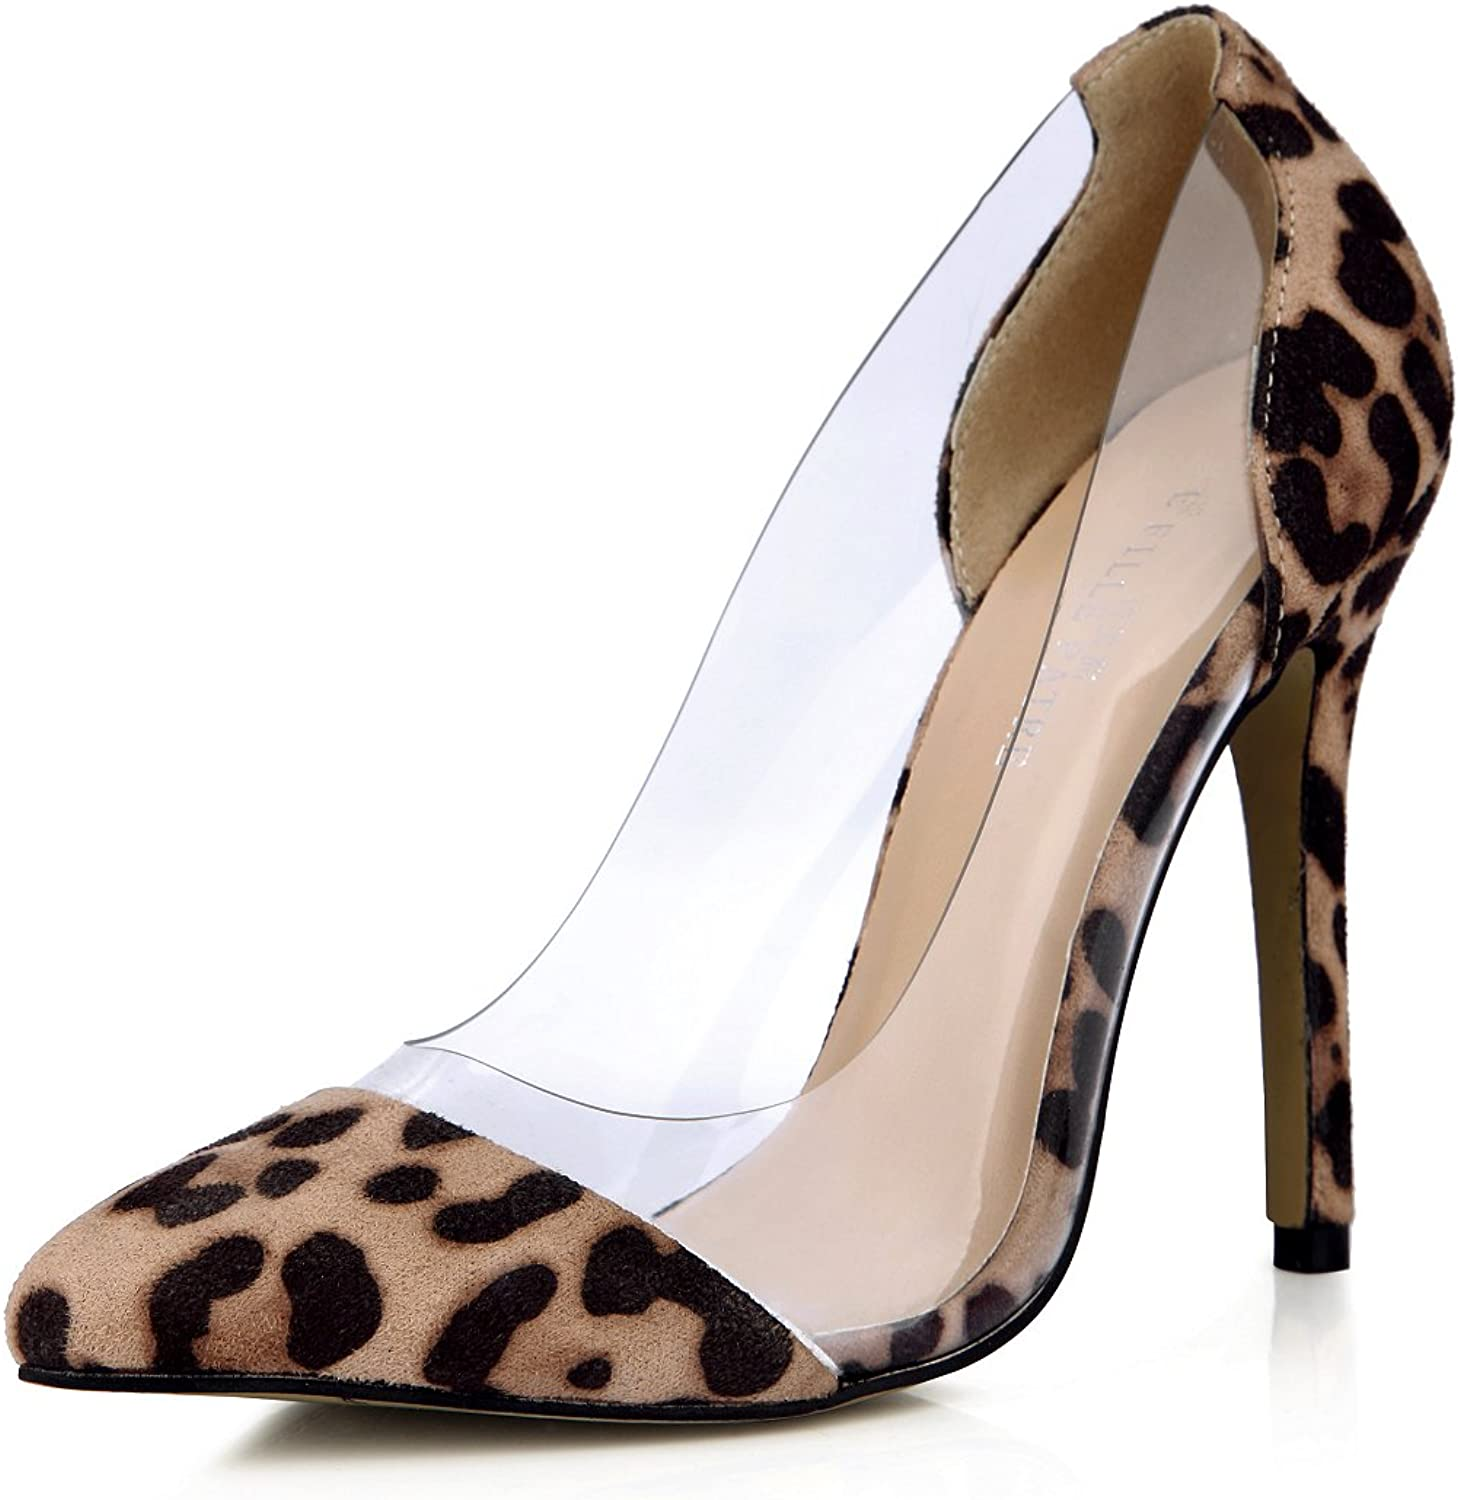 DolphinGirl Women Fashion Leopard Pointy Toe 12CM High Heels Patent Material Stiletto shoes SM00113